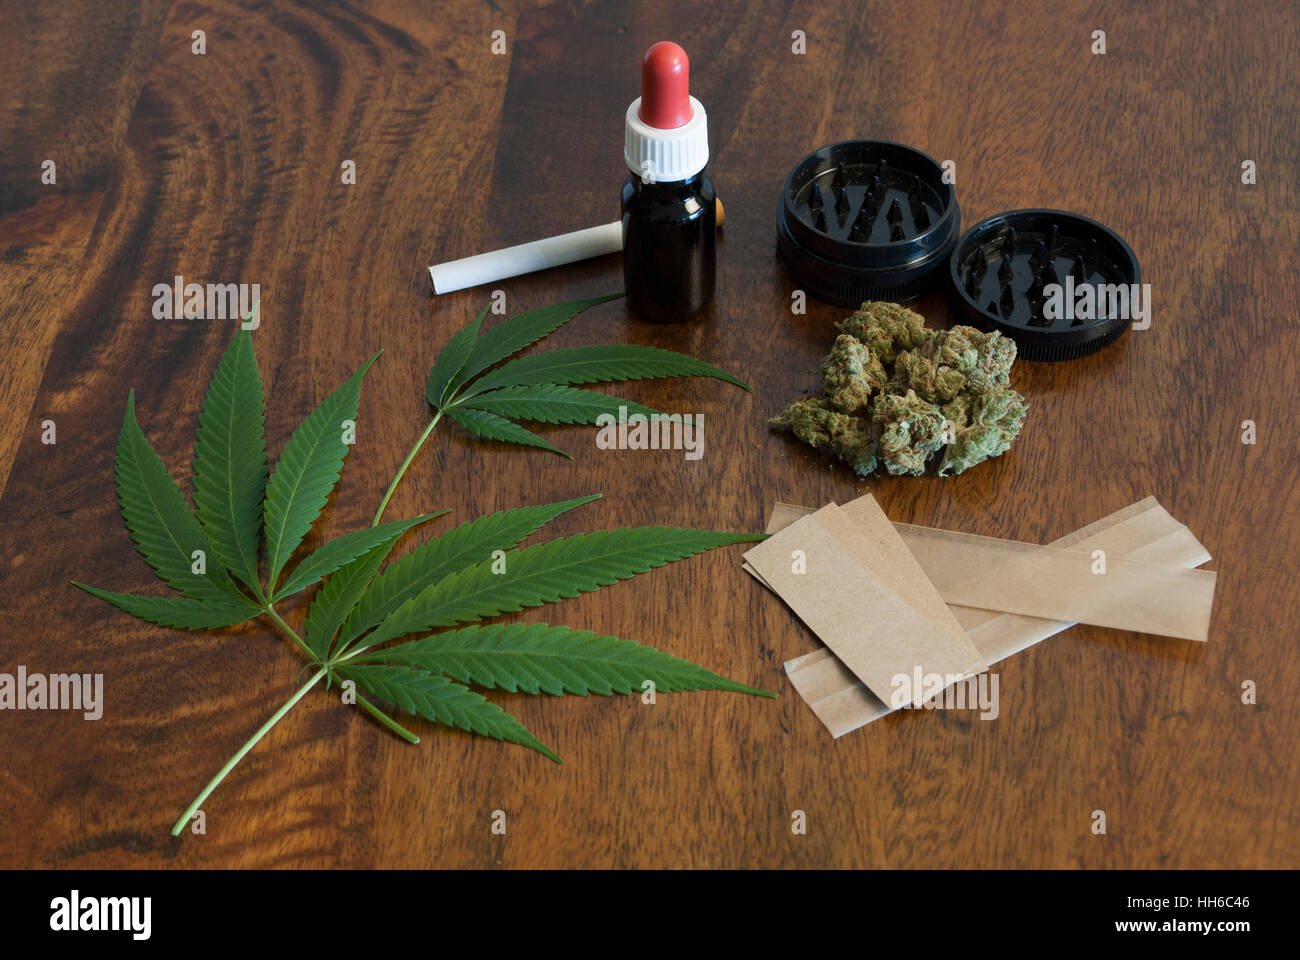 Cannabis sativa weed leafs and flower buds on wooden background with grinder and large smoking paper Stock Photo